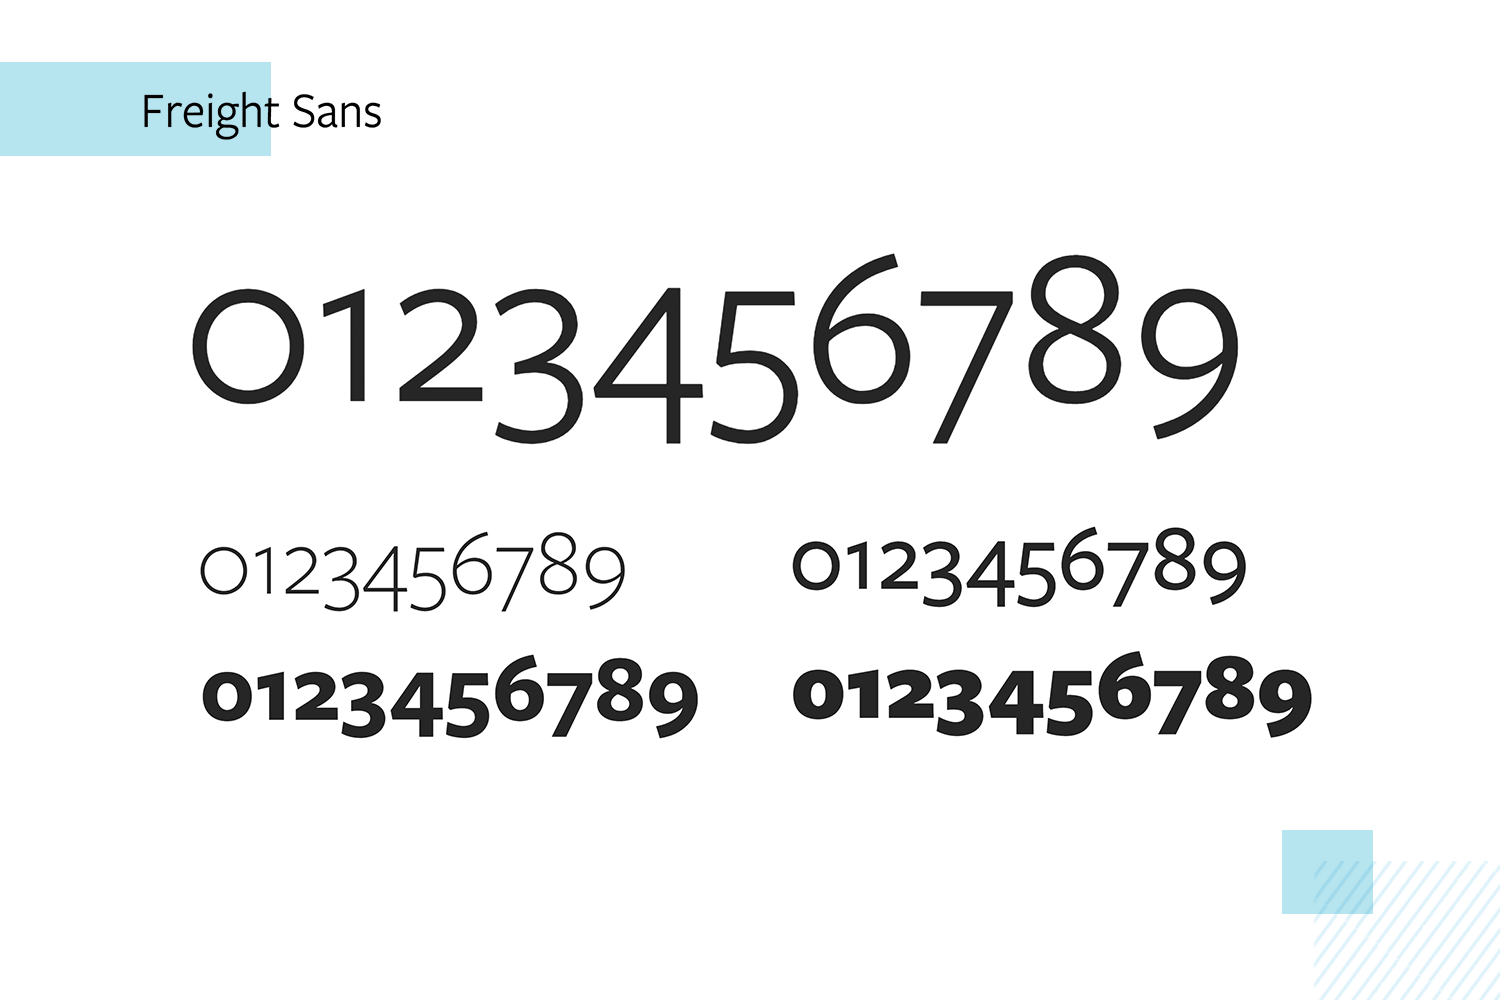 freight sans as paid number font